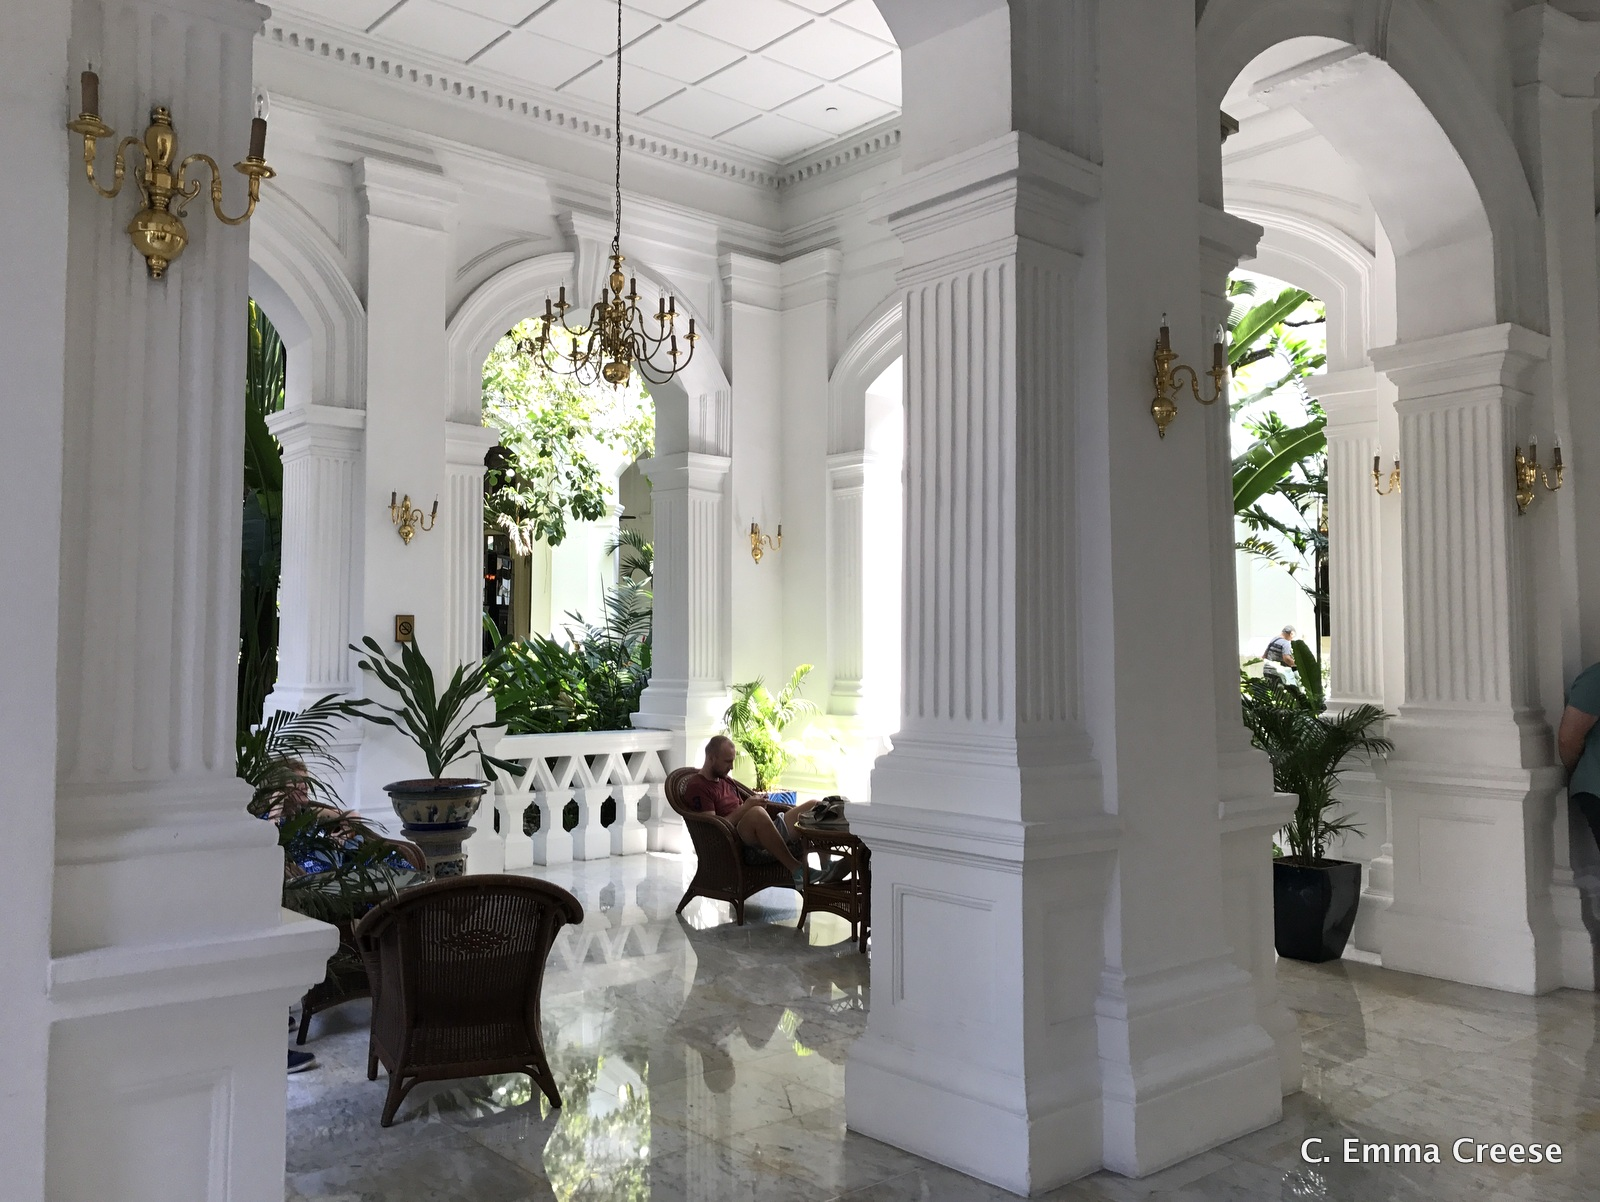 Raffles Luxury Hotel Review Singapore Adventures of a London Kiwi